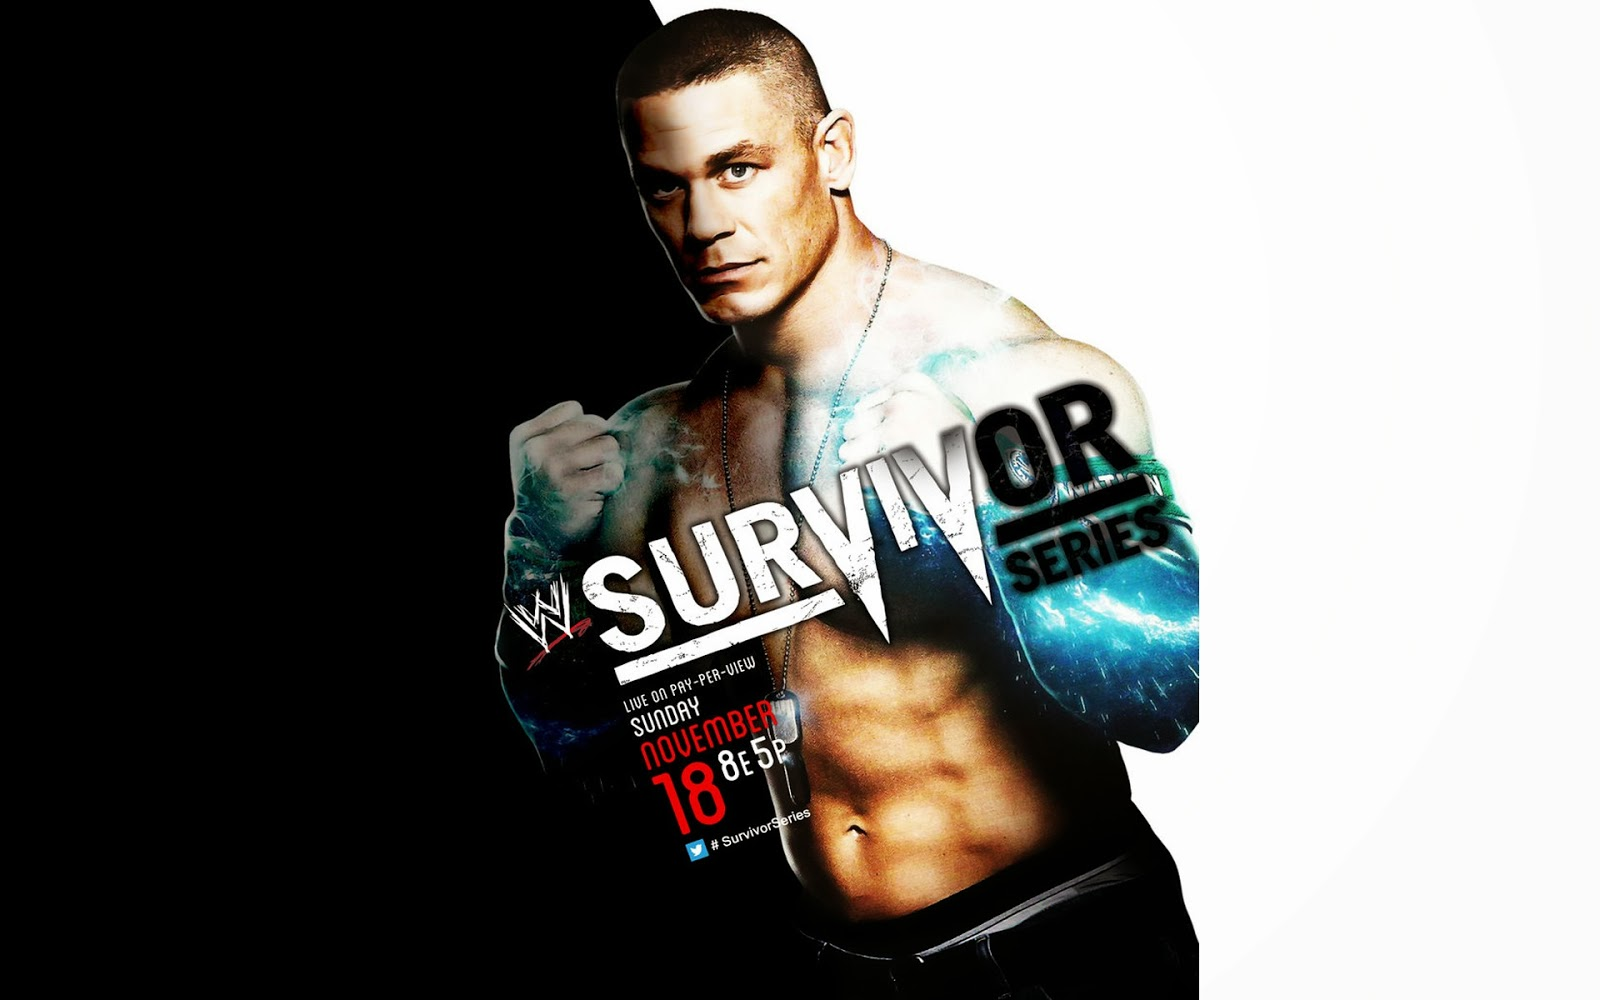 ravishment survivor series wwe 2013 hd wallpapers and